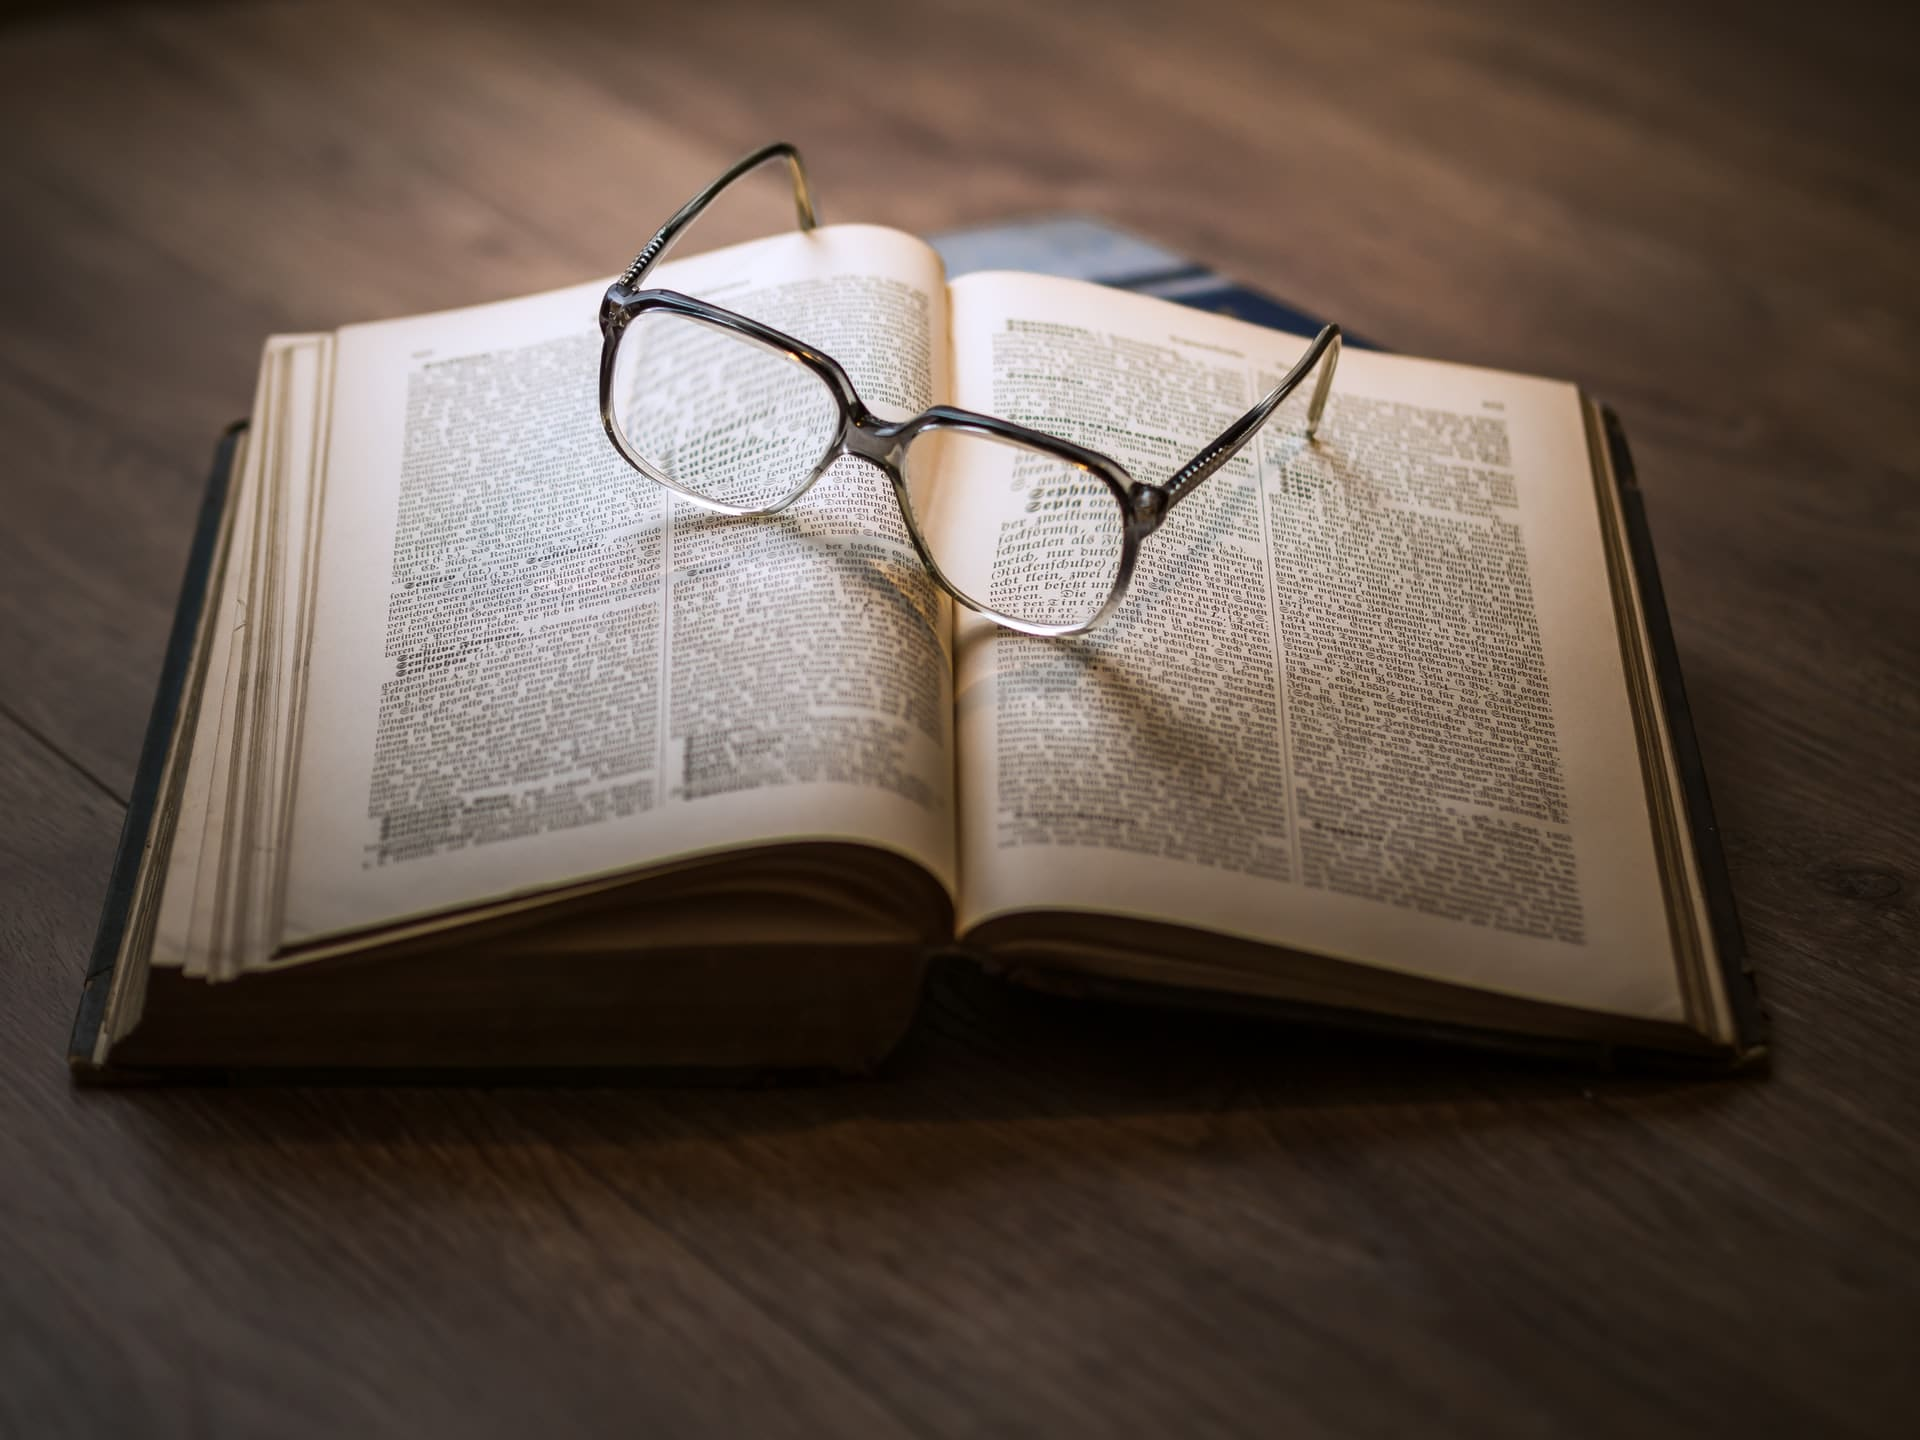 Publishing cycle. Text book with glasses.